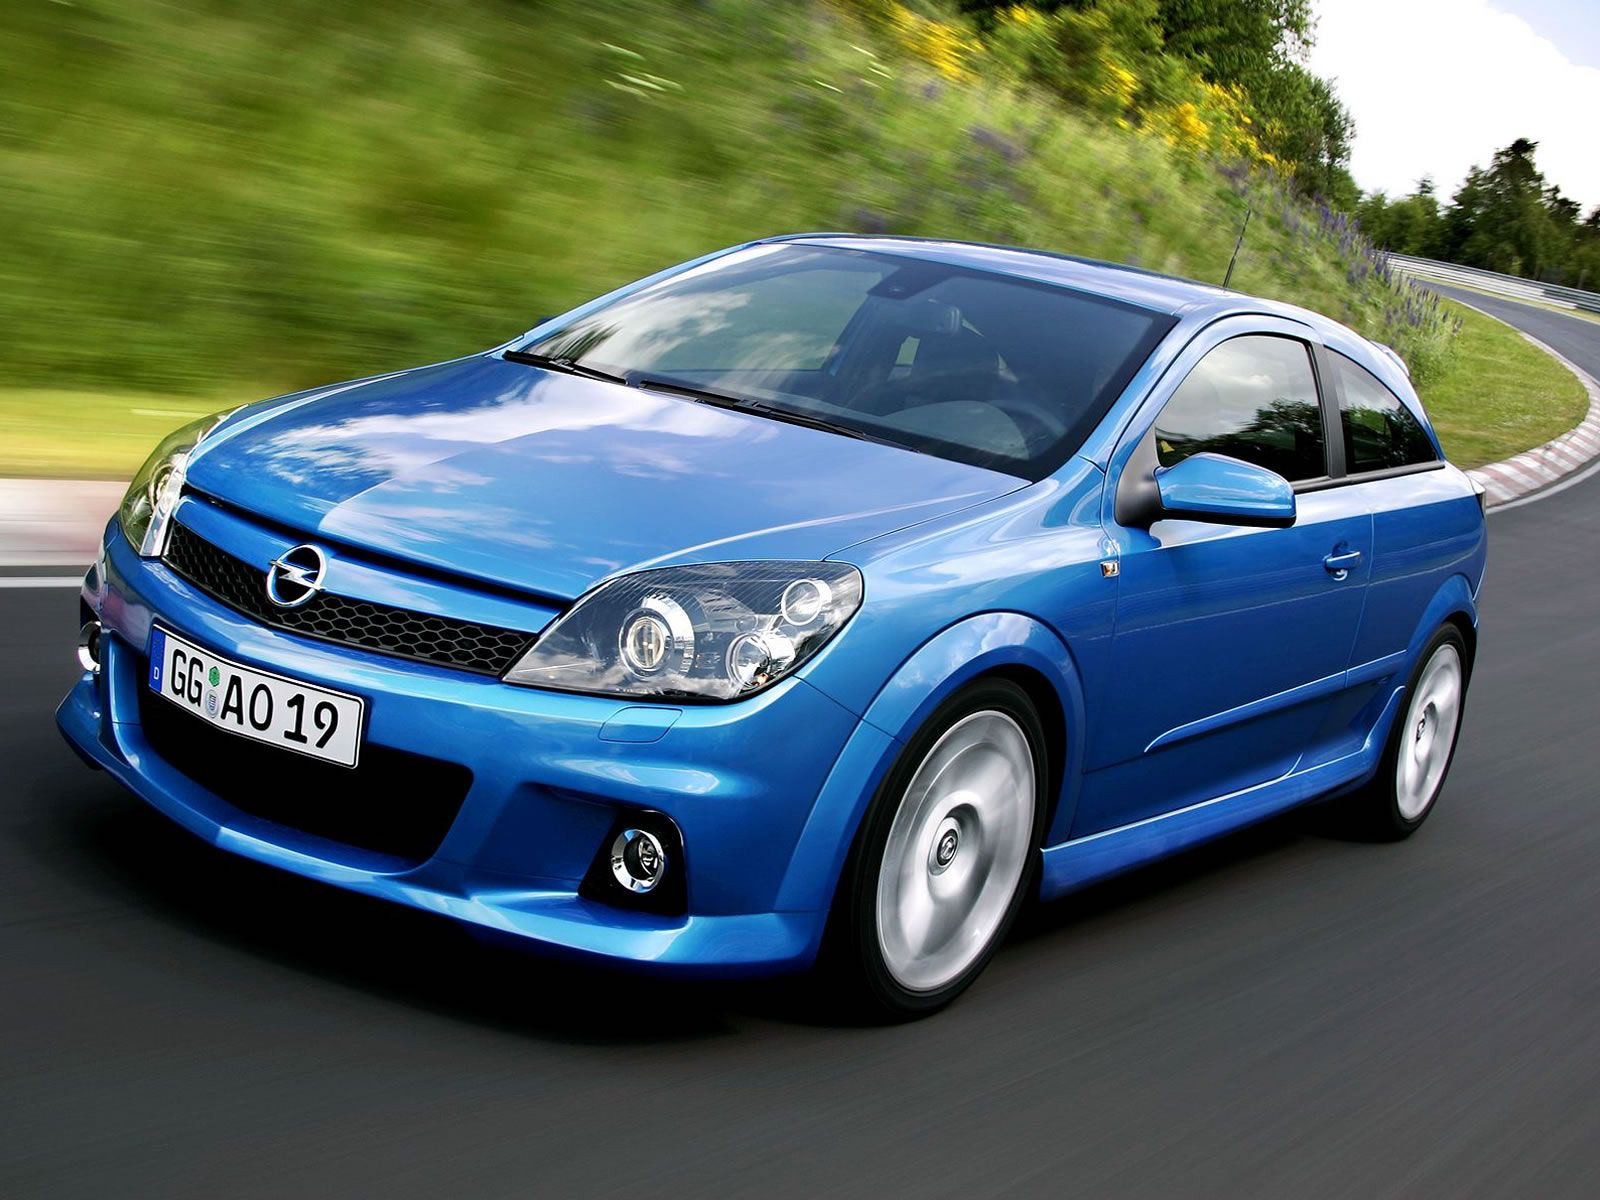 626 cars opel astra opc wallpaper - Wallpapers - Wallpapers HD ...